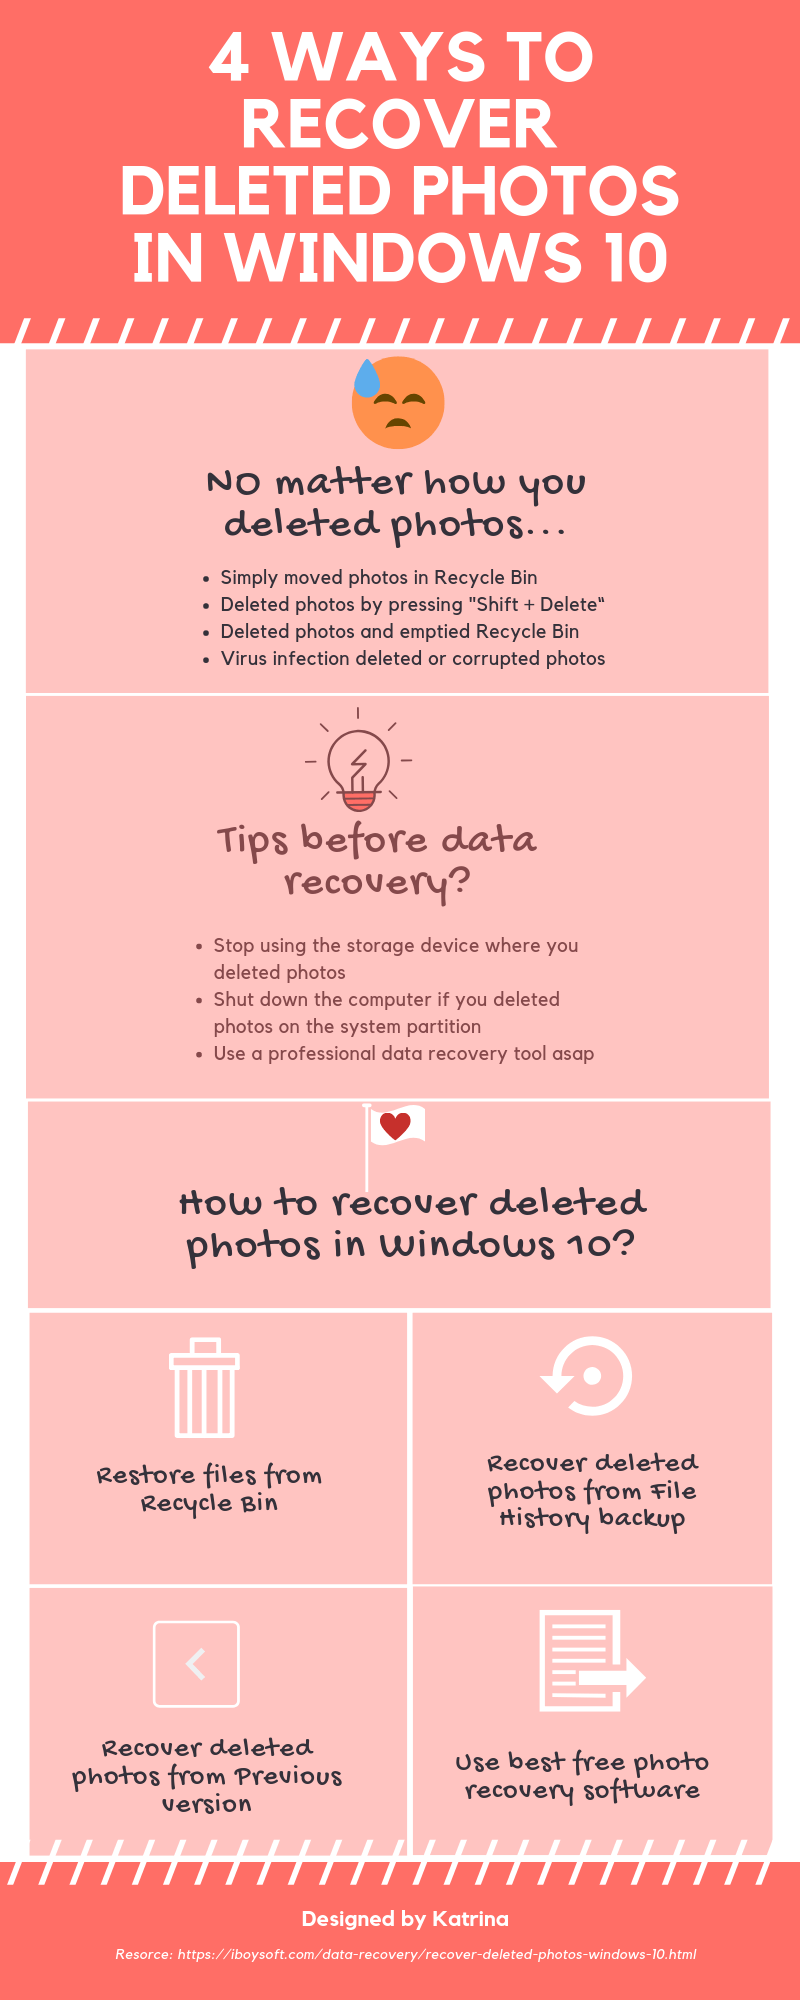 Recover deleted photos in Windows 10 infographic